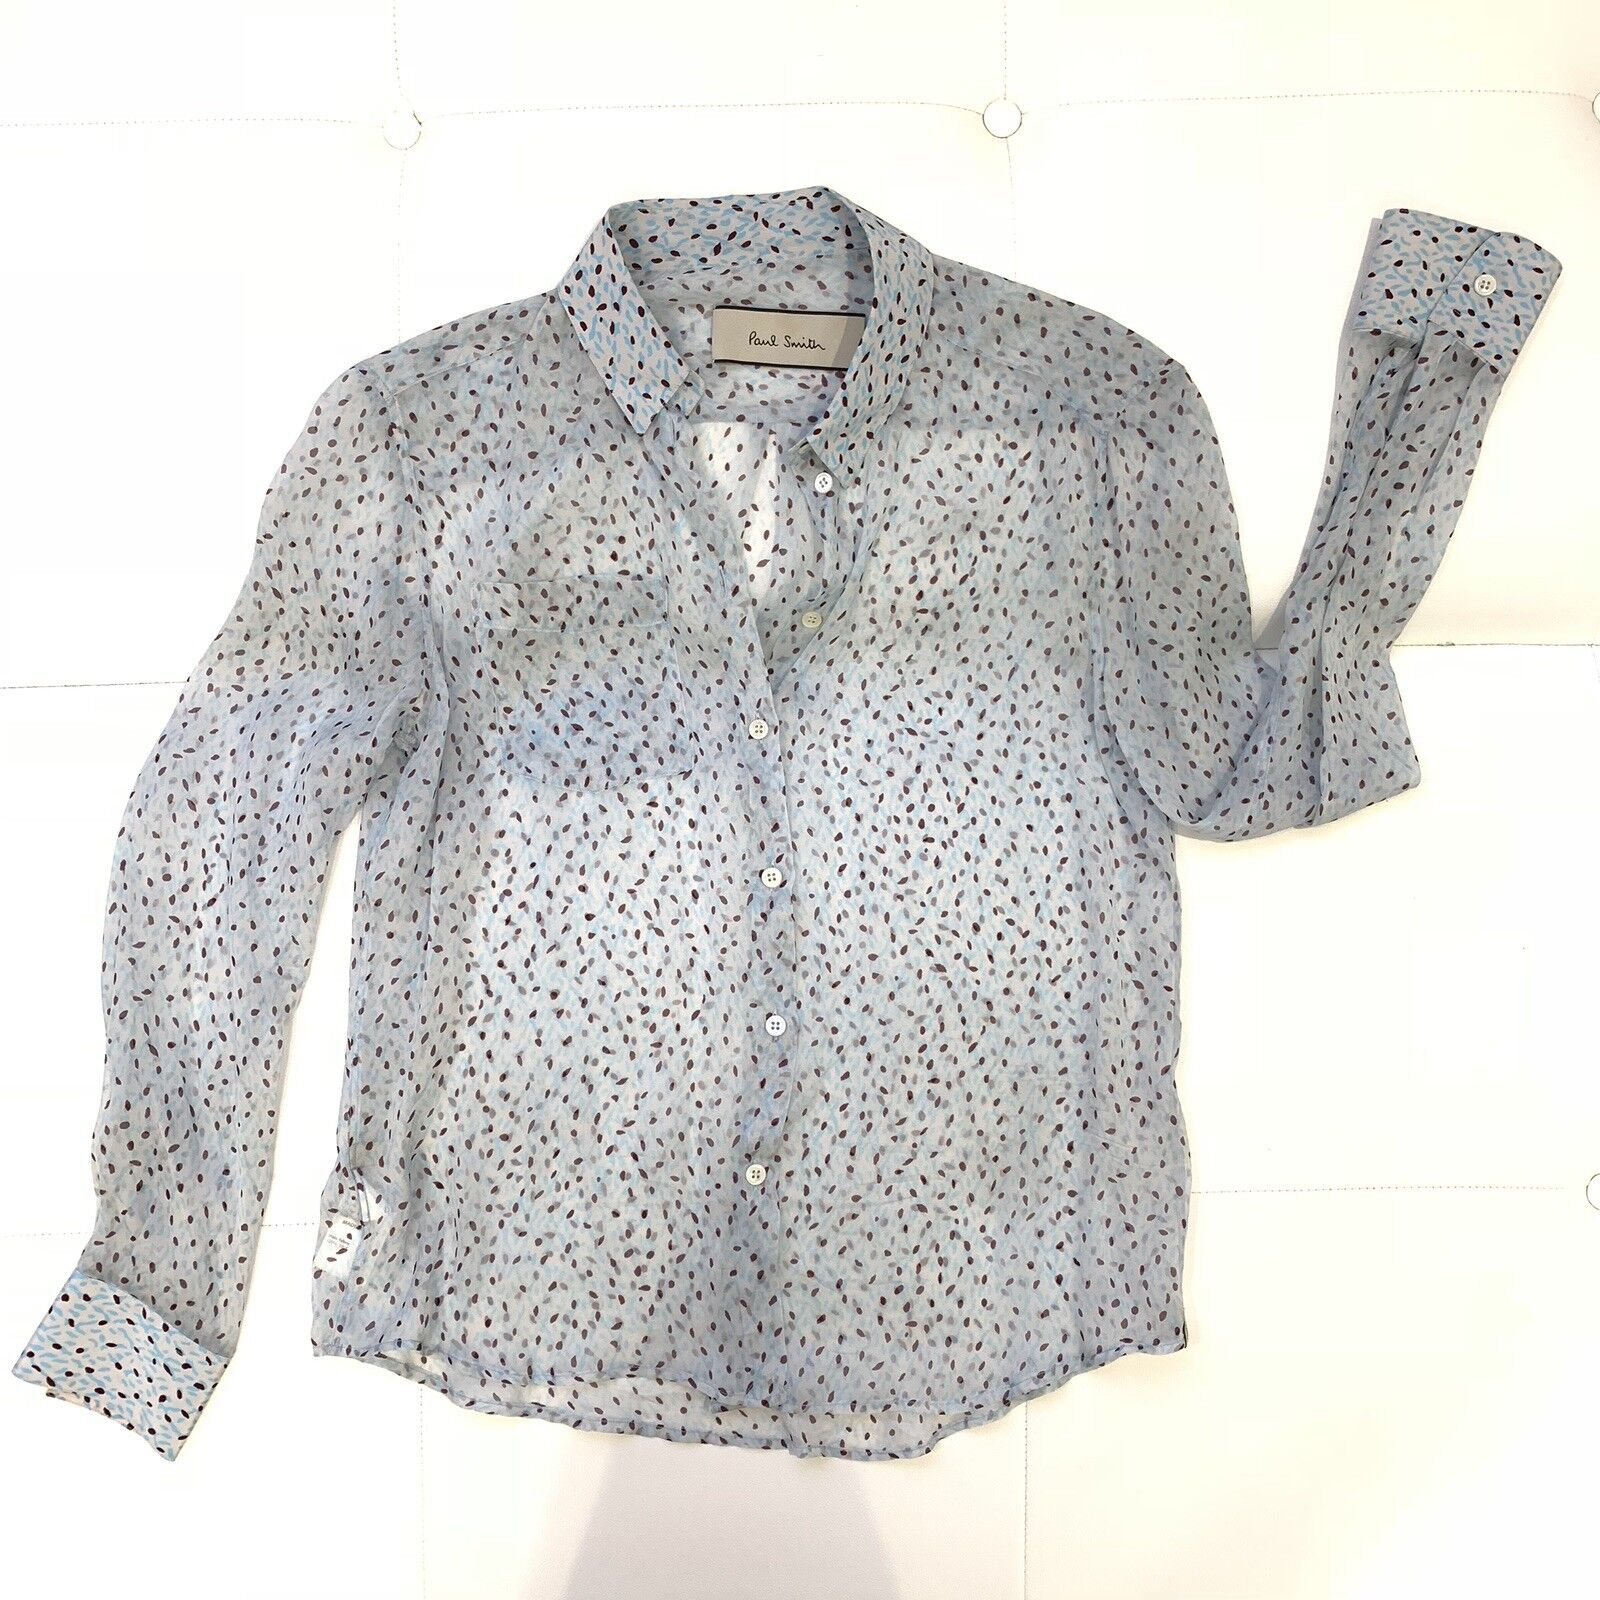 PAUL SMITH Blau Silk Sheer Blouse Sz 44